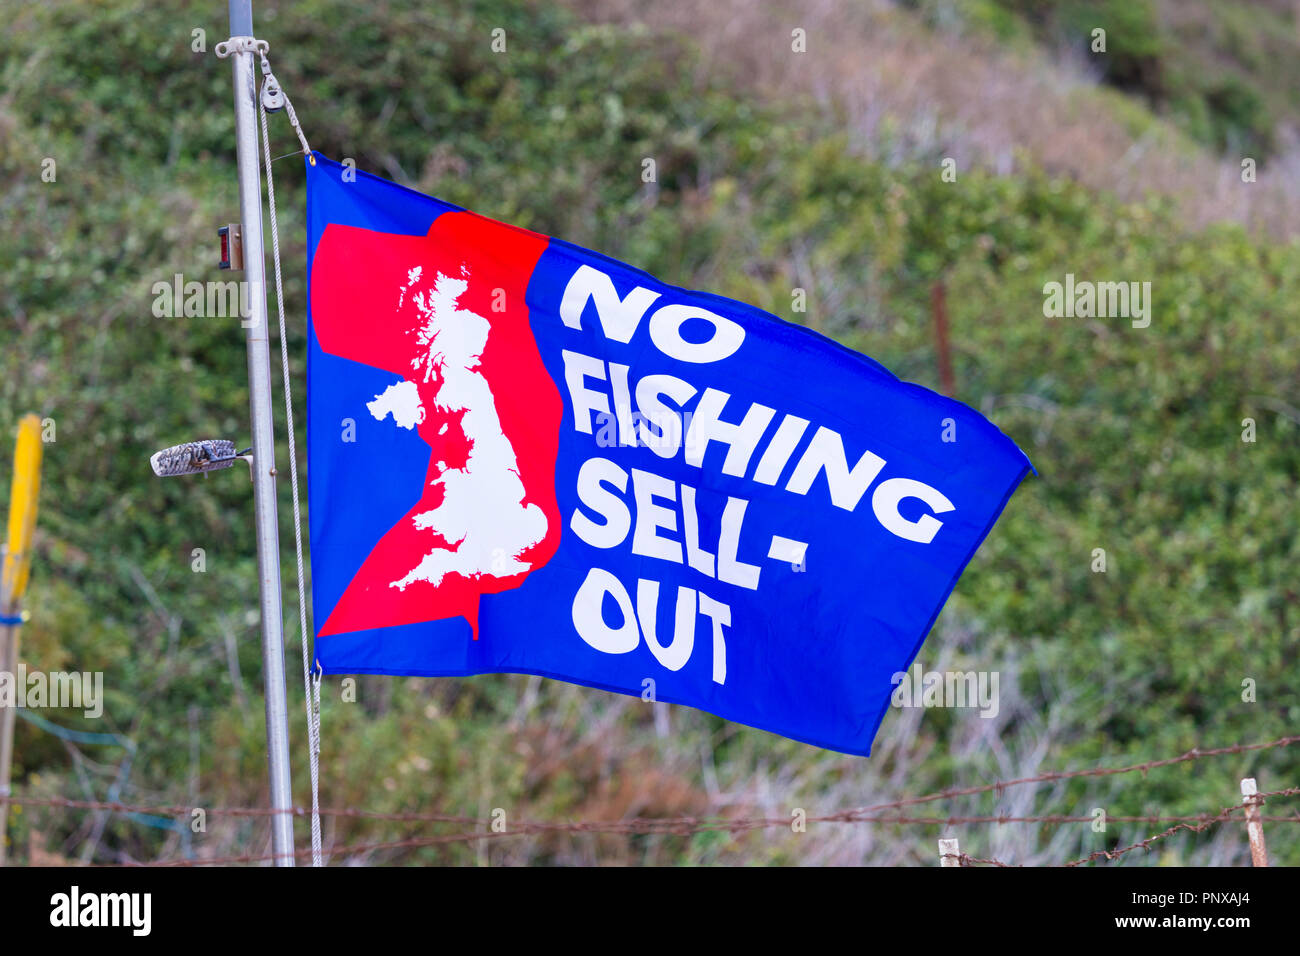 No fishing sell out flag, hastings, east sussex, uk - Stock Image